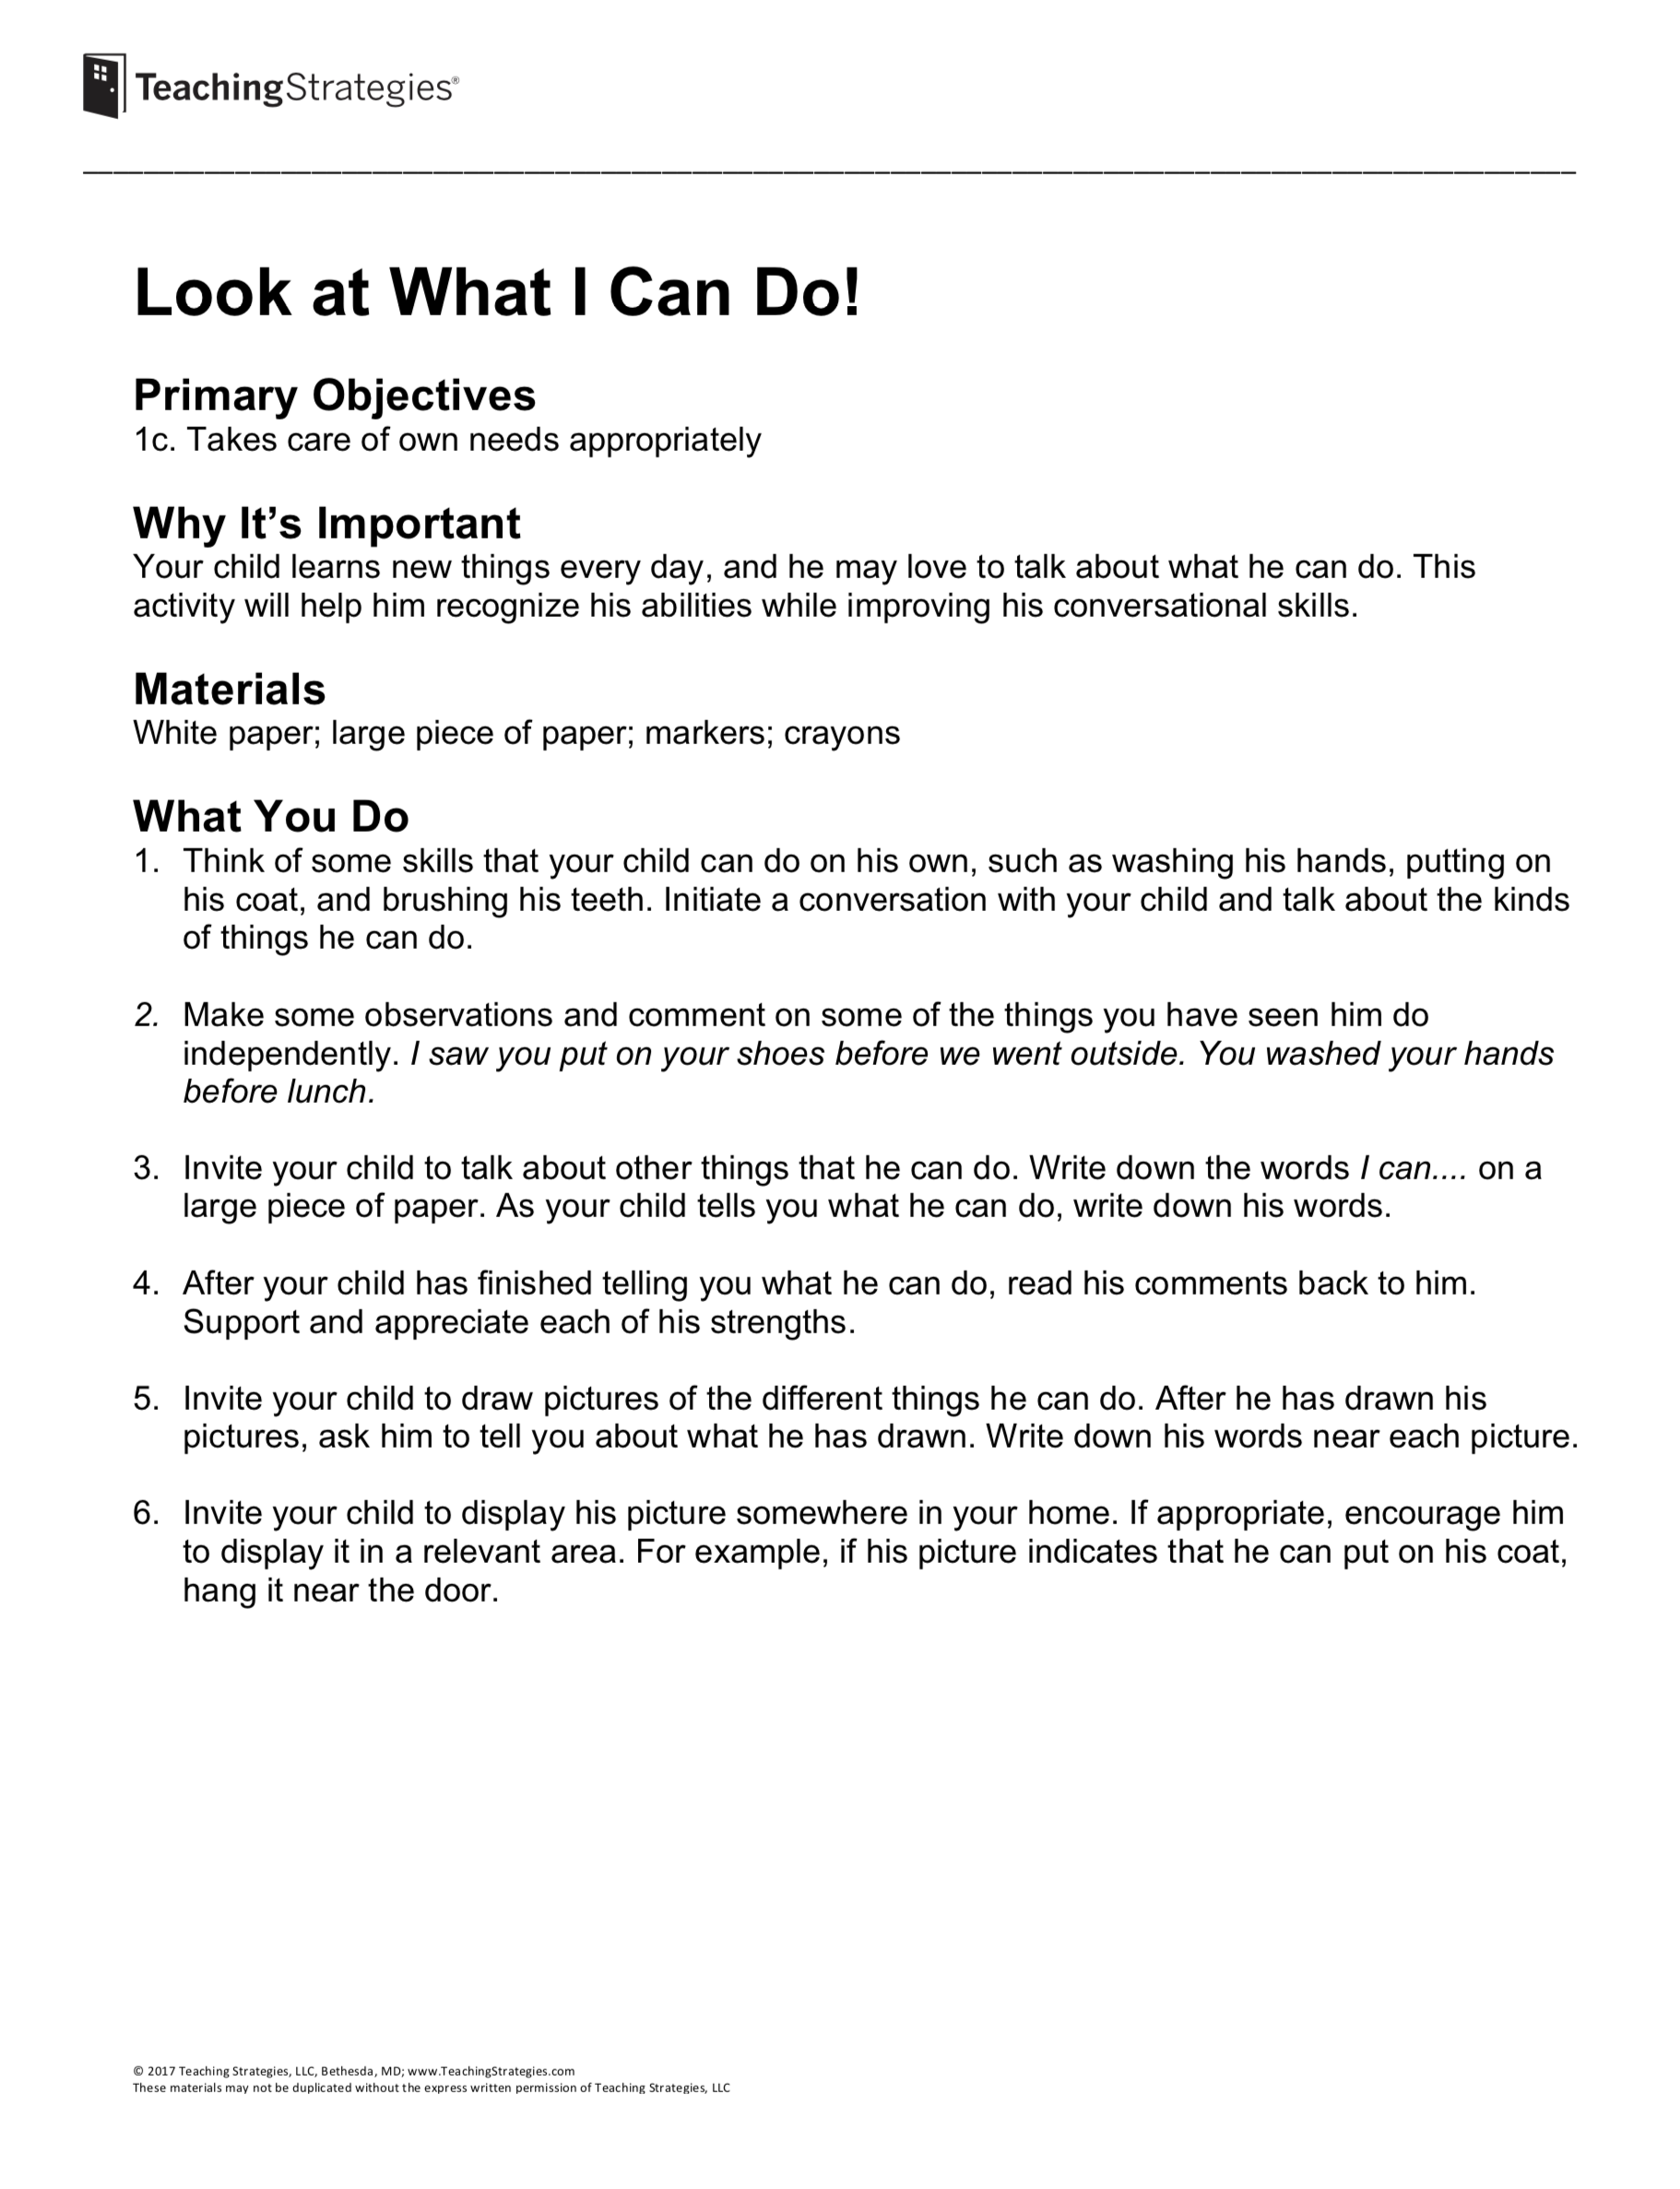 Look at What I Can Do! - Preschool Resource